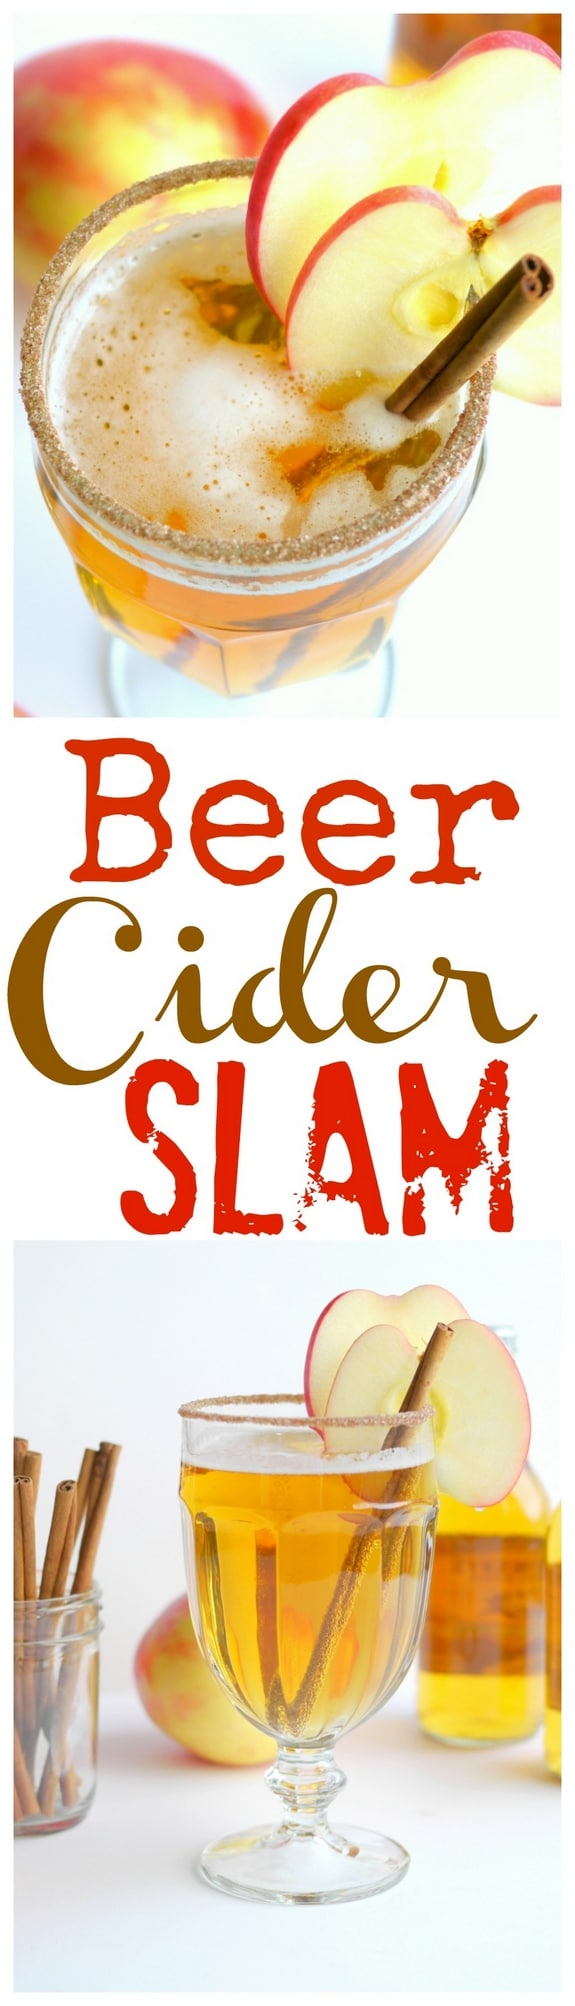 This Beer-Cider Slam is here just in time to help cheer on your team for March Madness! Have you ever tried a beer cocktail? It's time, it's time...you'll be surprised how awesome they are. via @cmpollak1